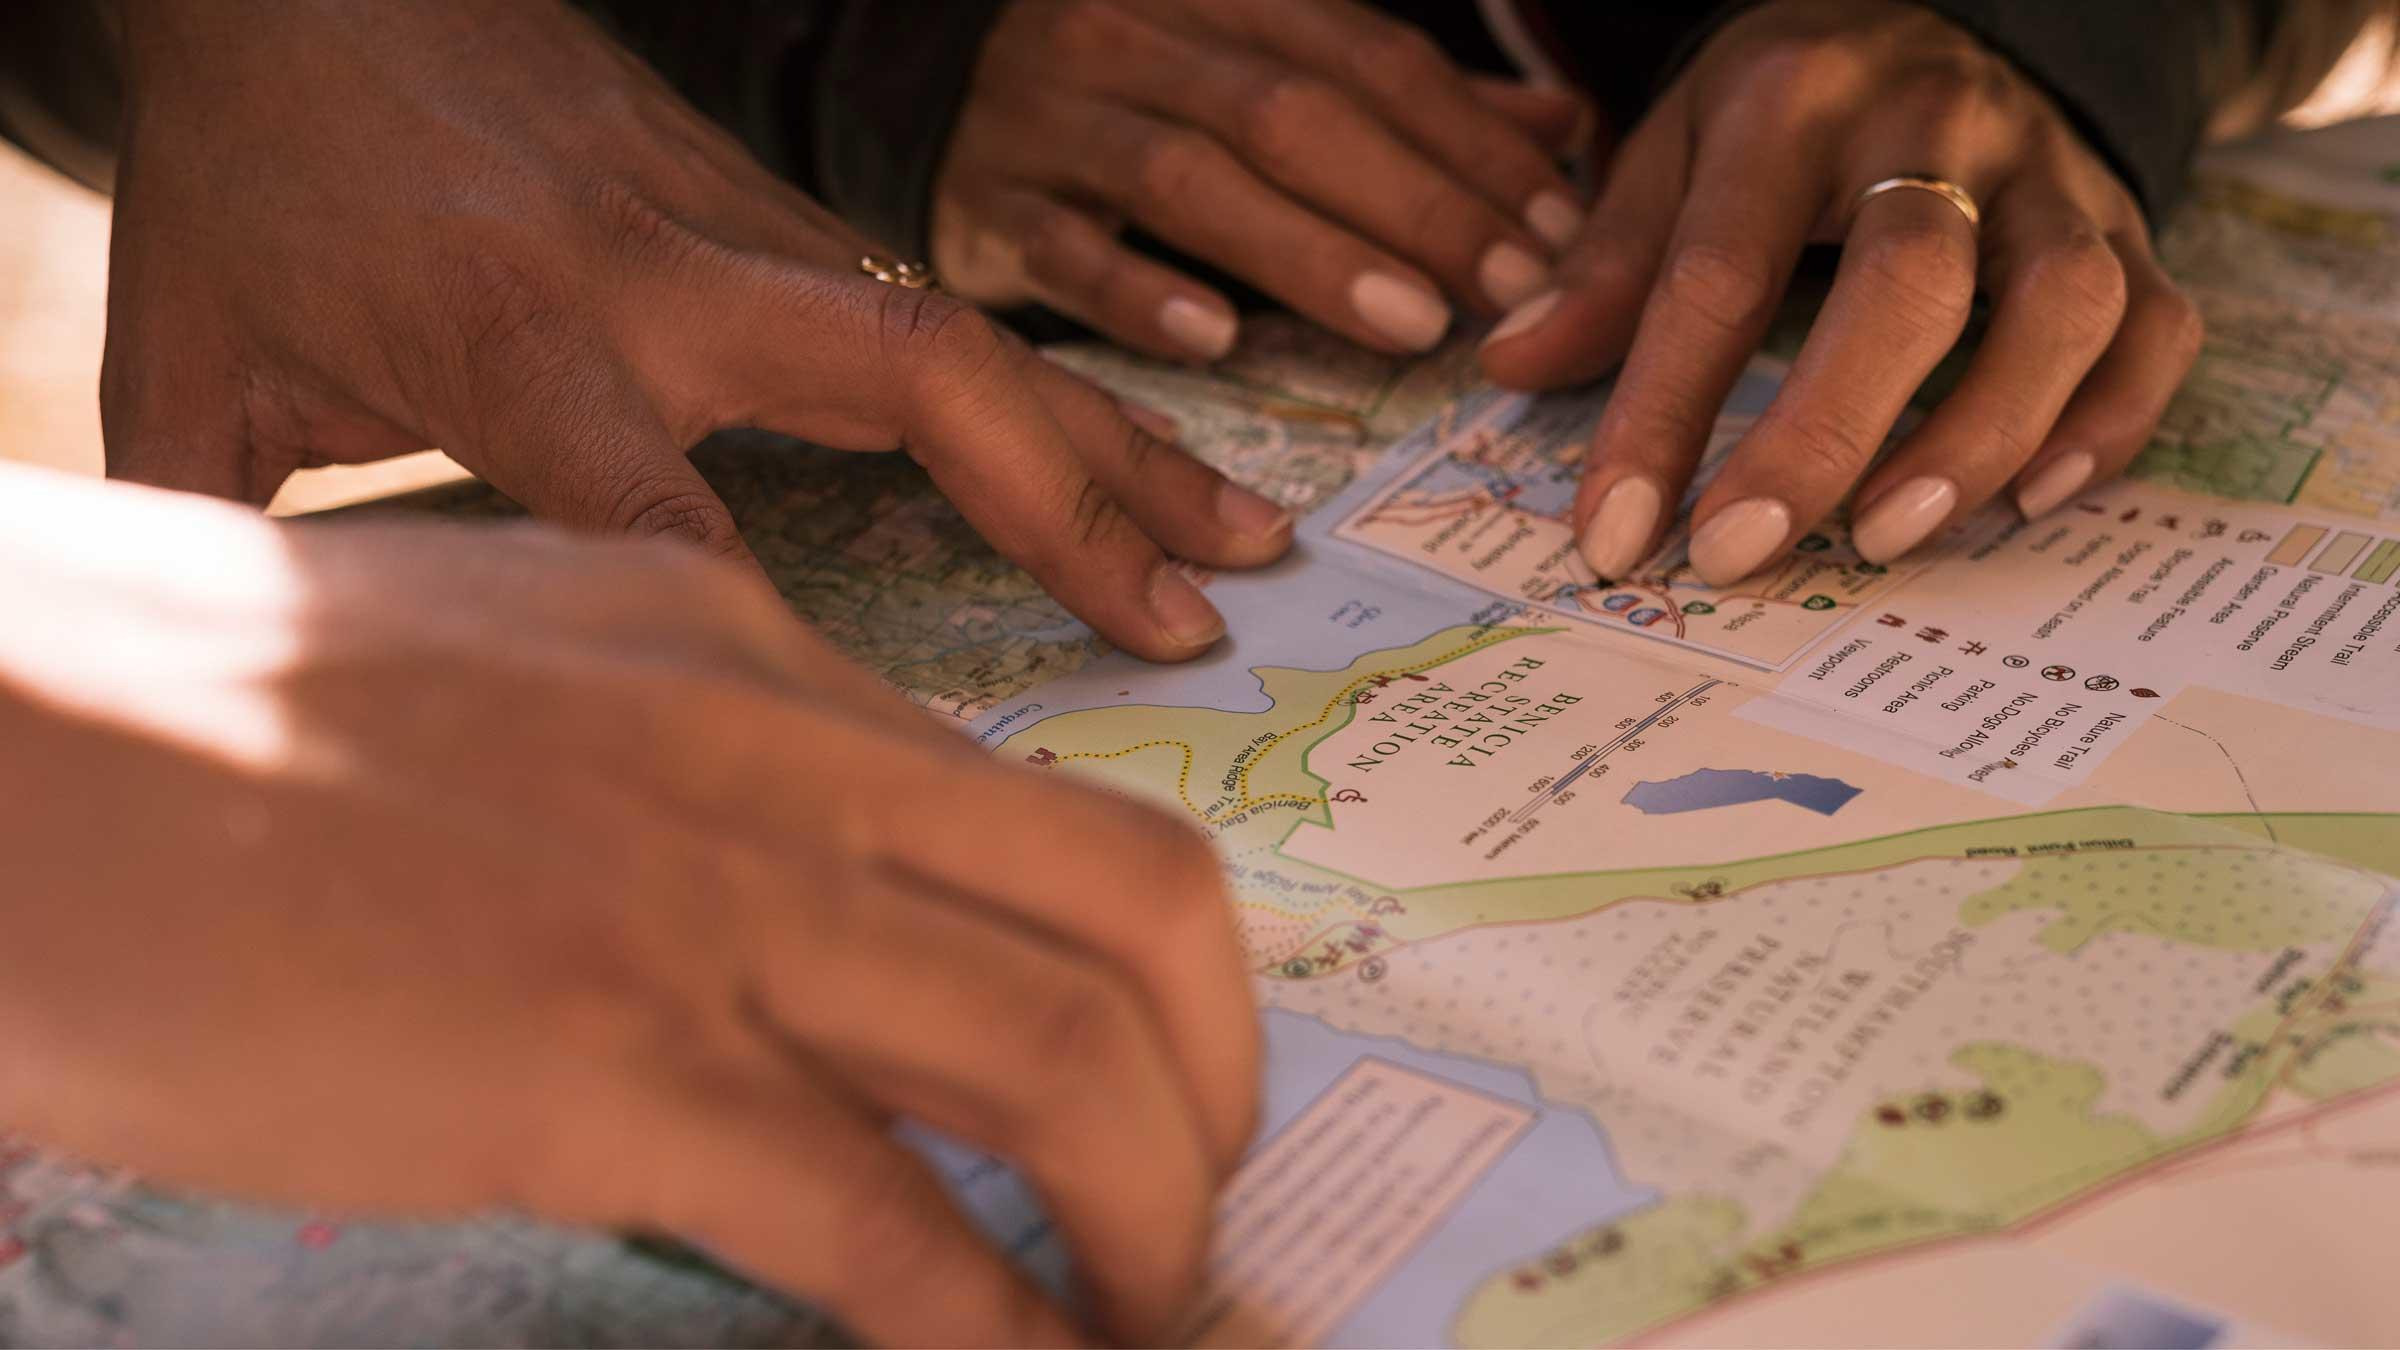 Women's Backcountry Navigation with a Map & Compass